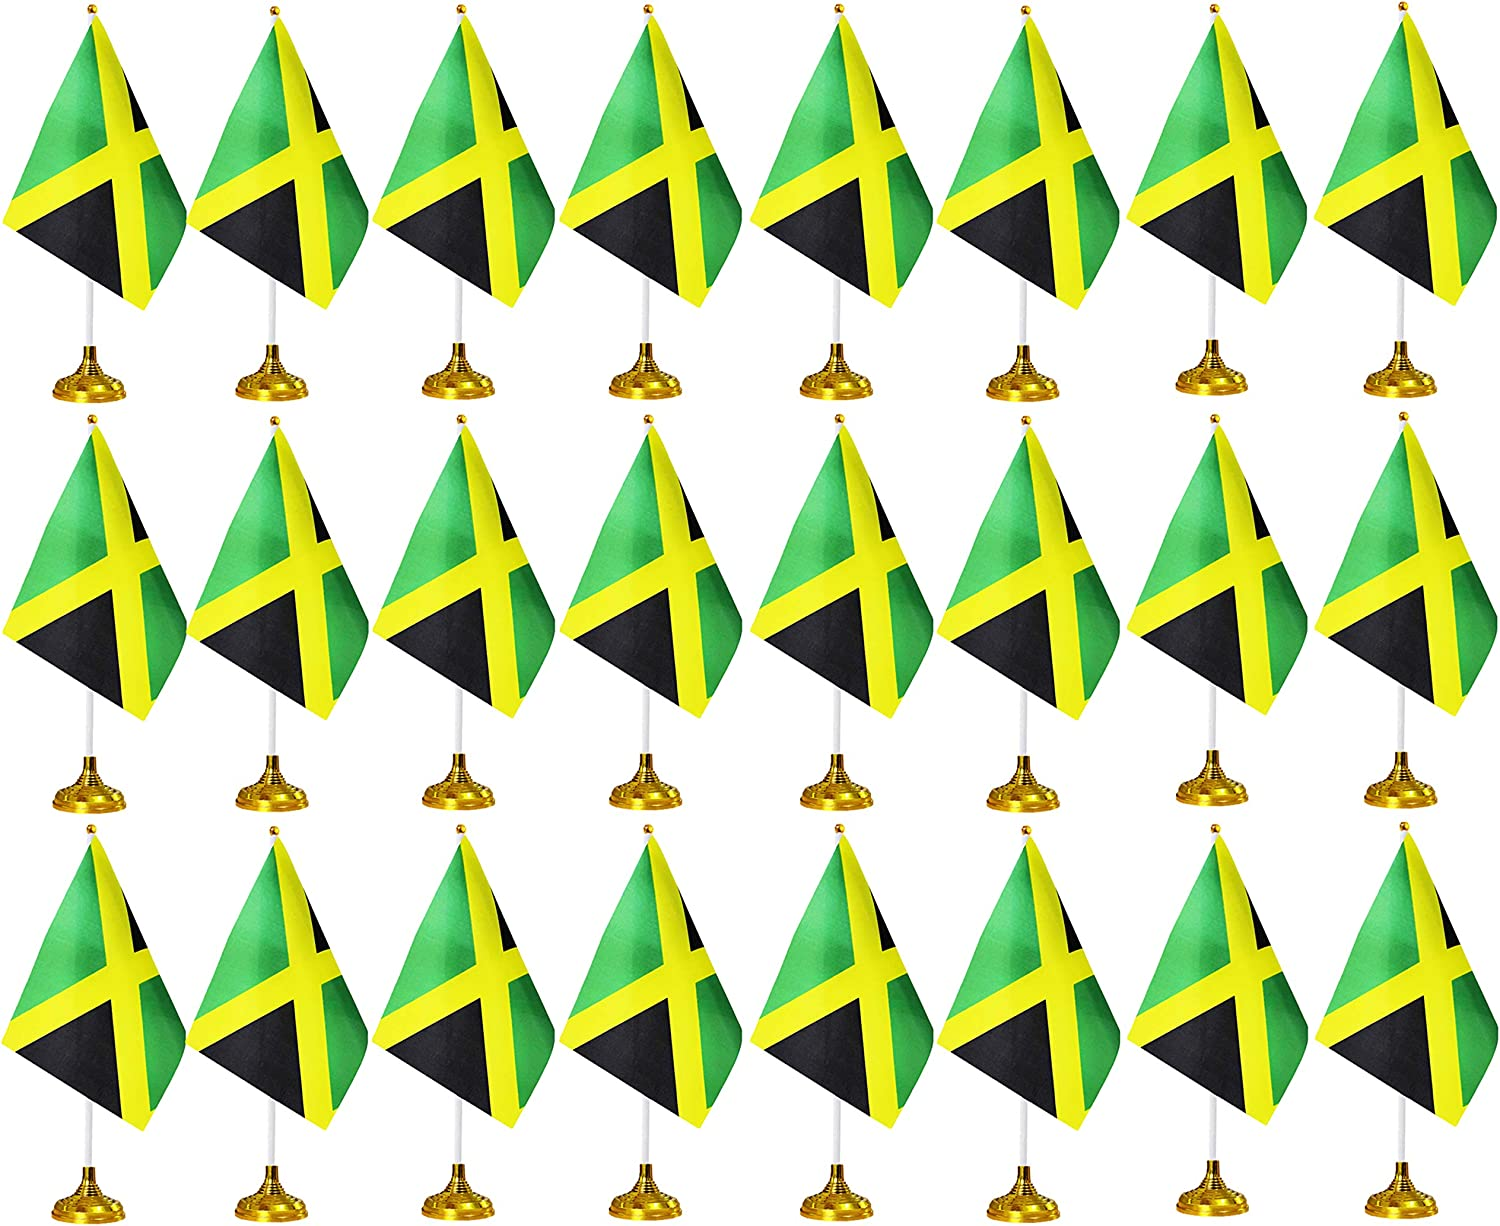 24 Pieces Jamaica Flags Table Flags on Stand with Stand Base,Small Mini Jamaican Flags Office Table Flags Set,Jamaicans Flags Desk Theme Party Decoration,Home Desk Decoration,Festival Events Celebrati